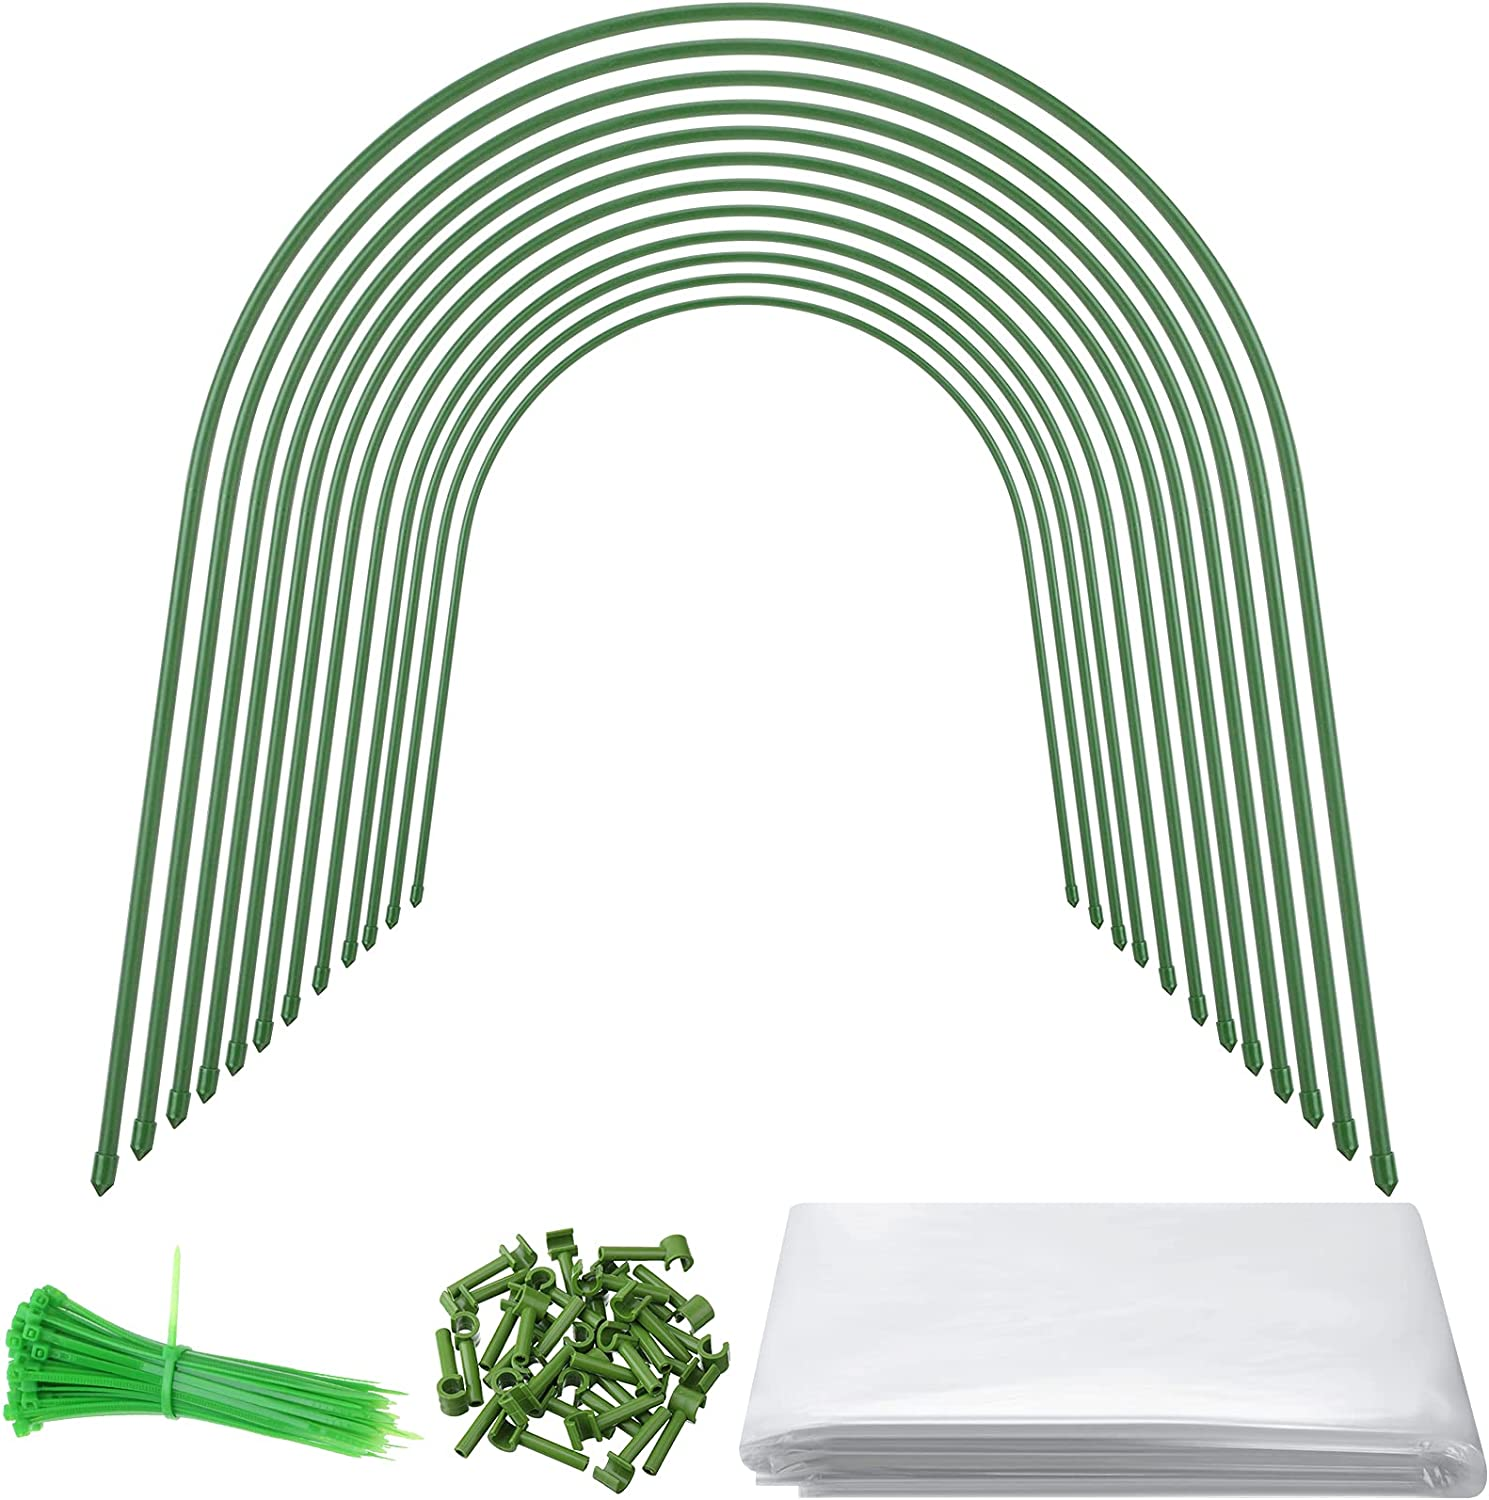 12 Pieces Greenhouse Hoops 4 Feet Grow Tunnel Garden Hoops for Raised Bed Row Cover Hoops with 52.5 x 6 Feet Greenhouse Plastic Greenhouse Film Cover for Garden Fabric Plant Support Protection